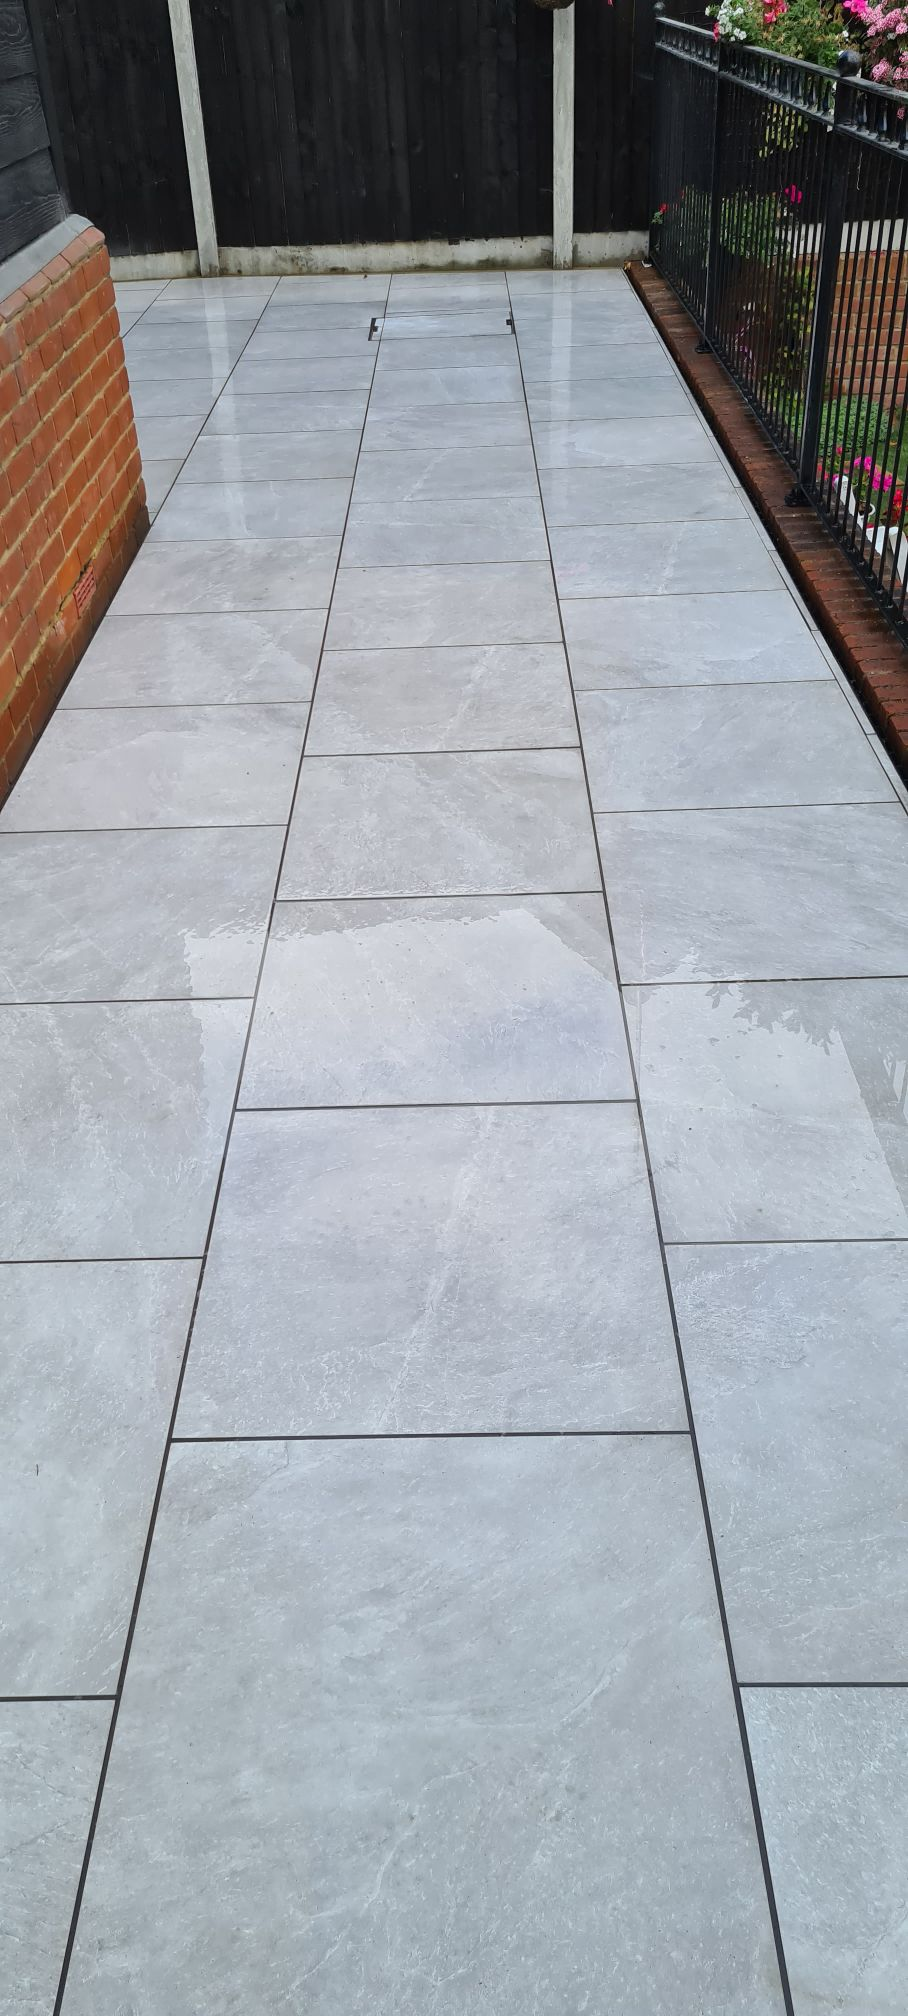 MB Brickwork Driveways and Patios